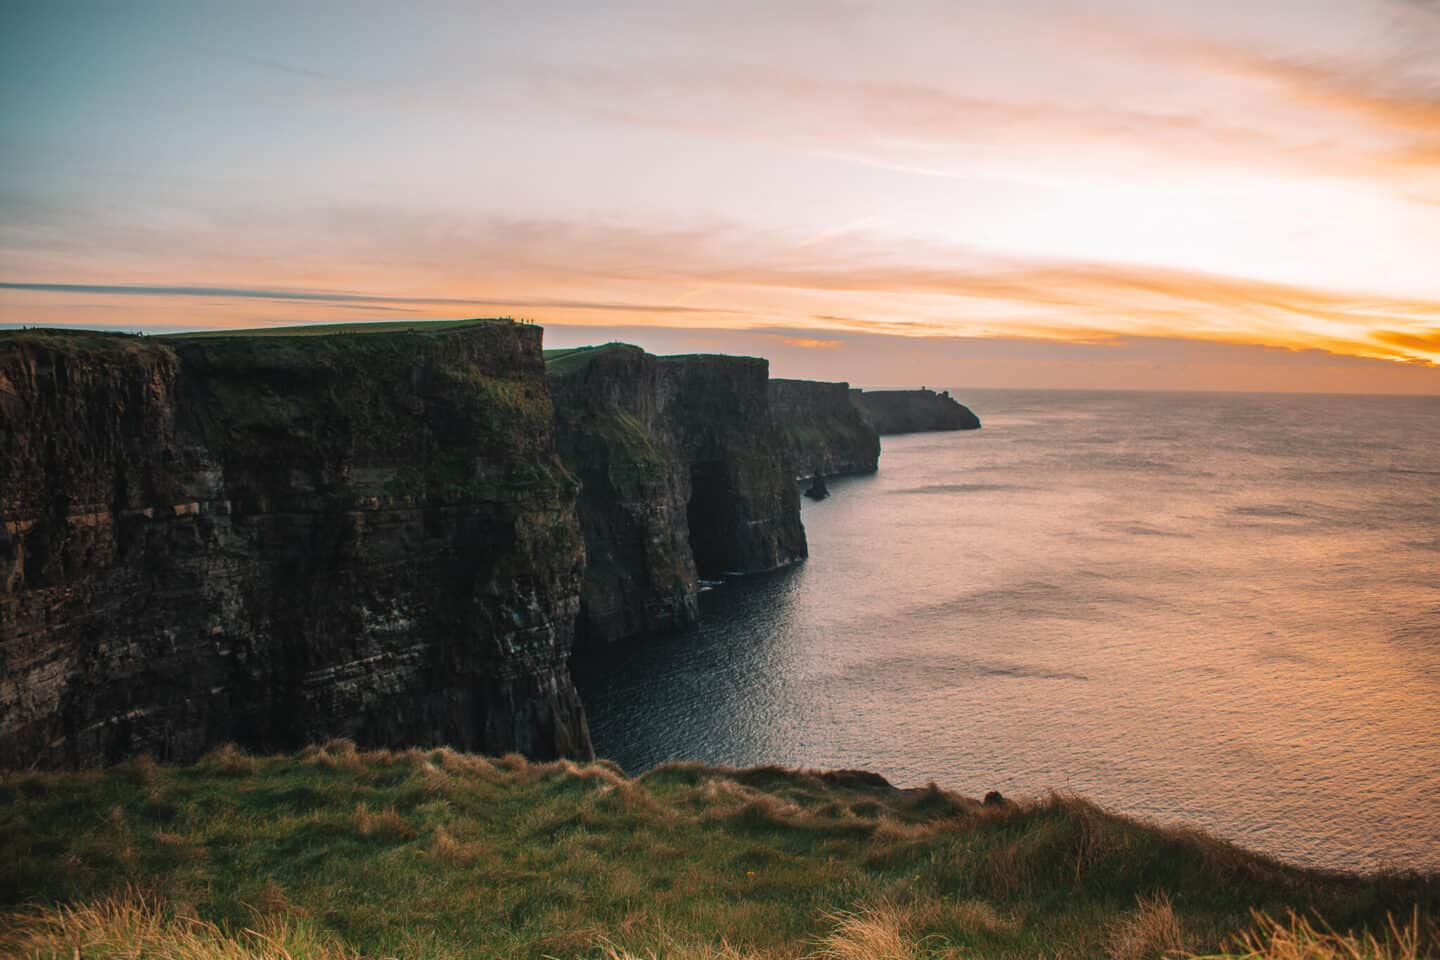 Rugged Cliffs rising out of the ocean at sunset.